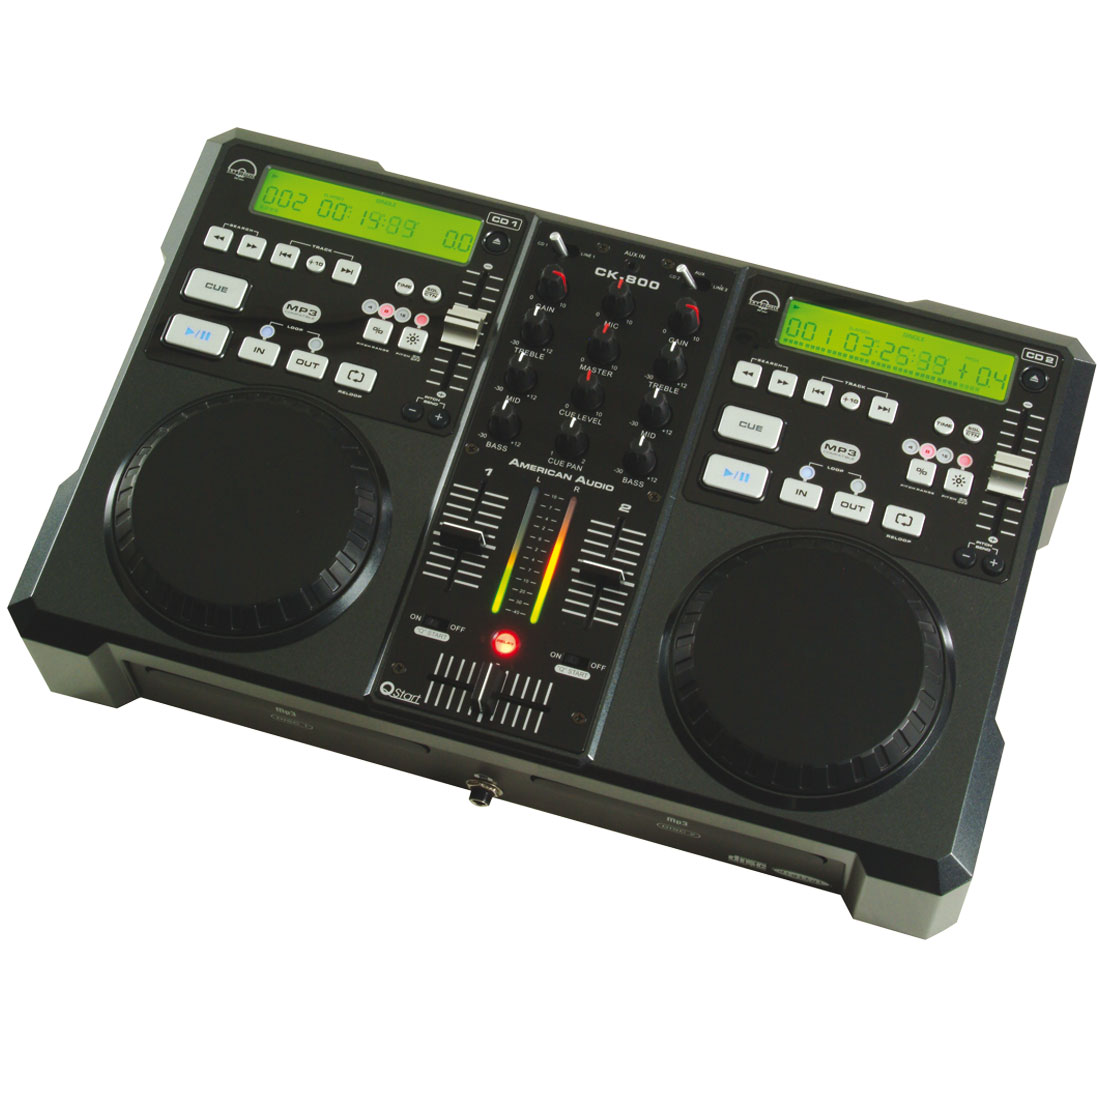 CK-800 MP3 double CD Player with mixer